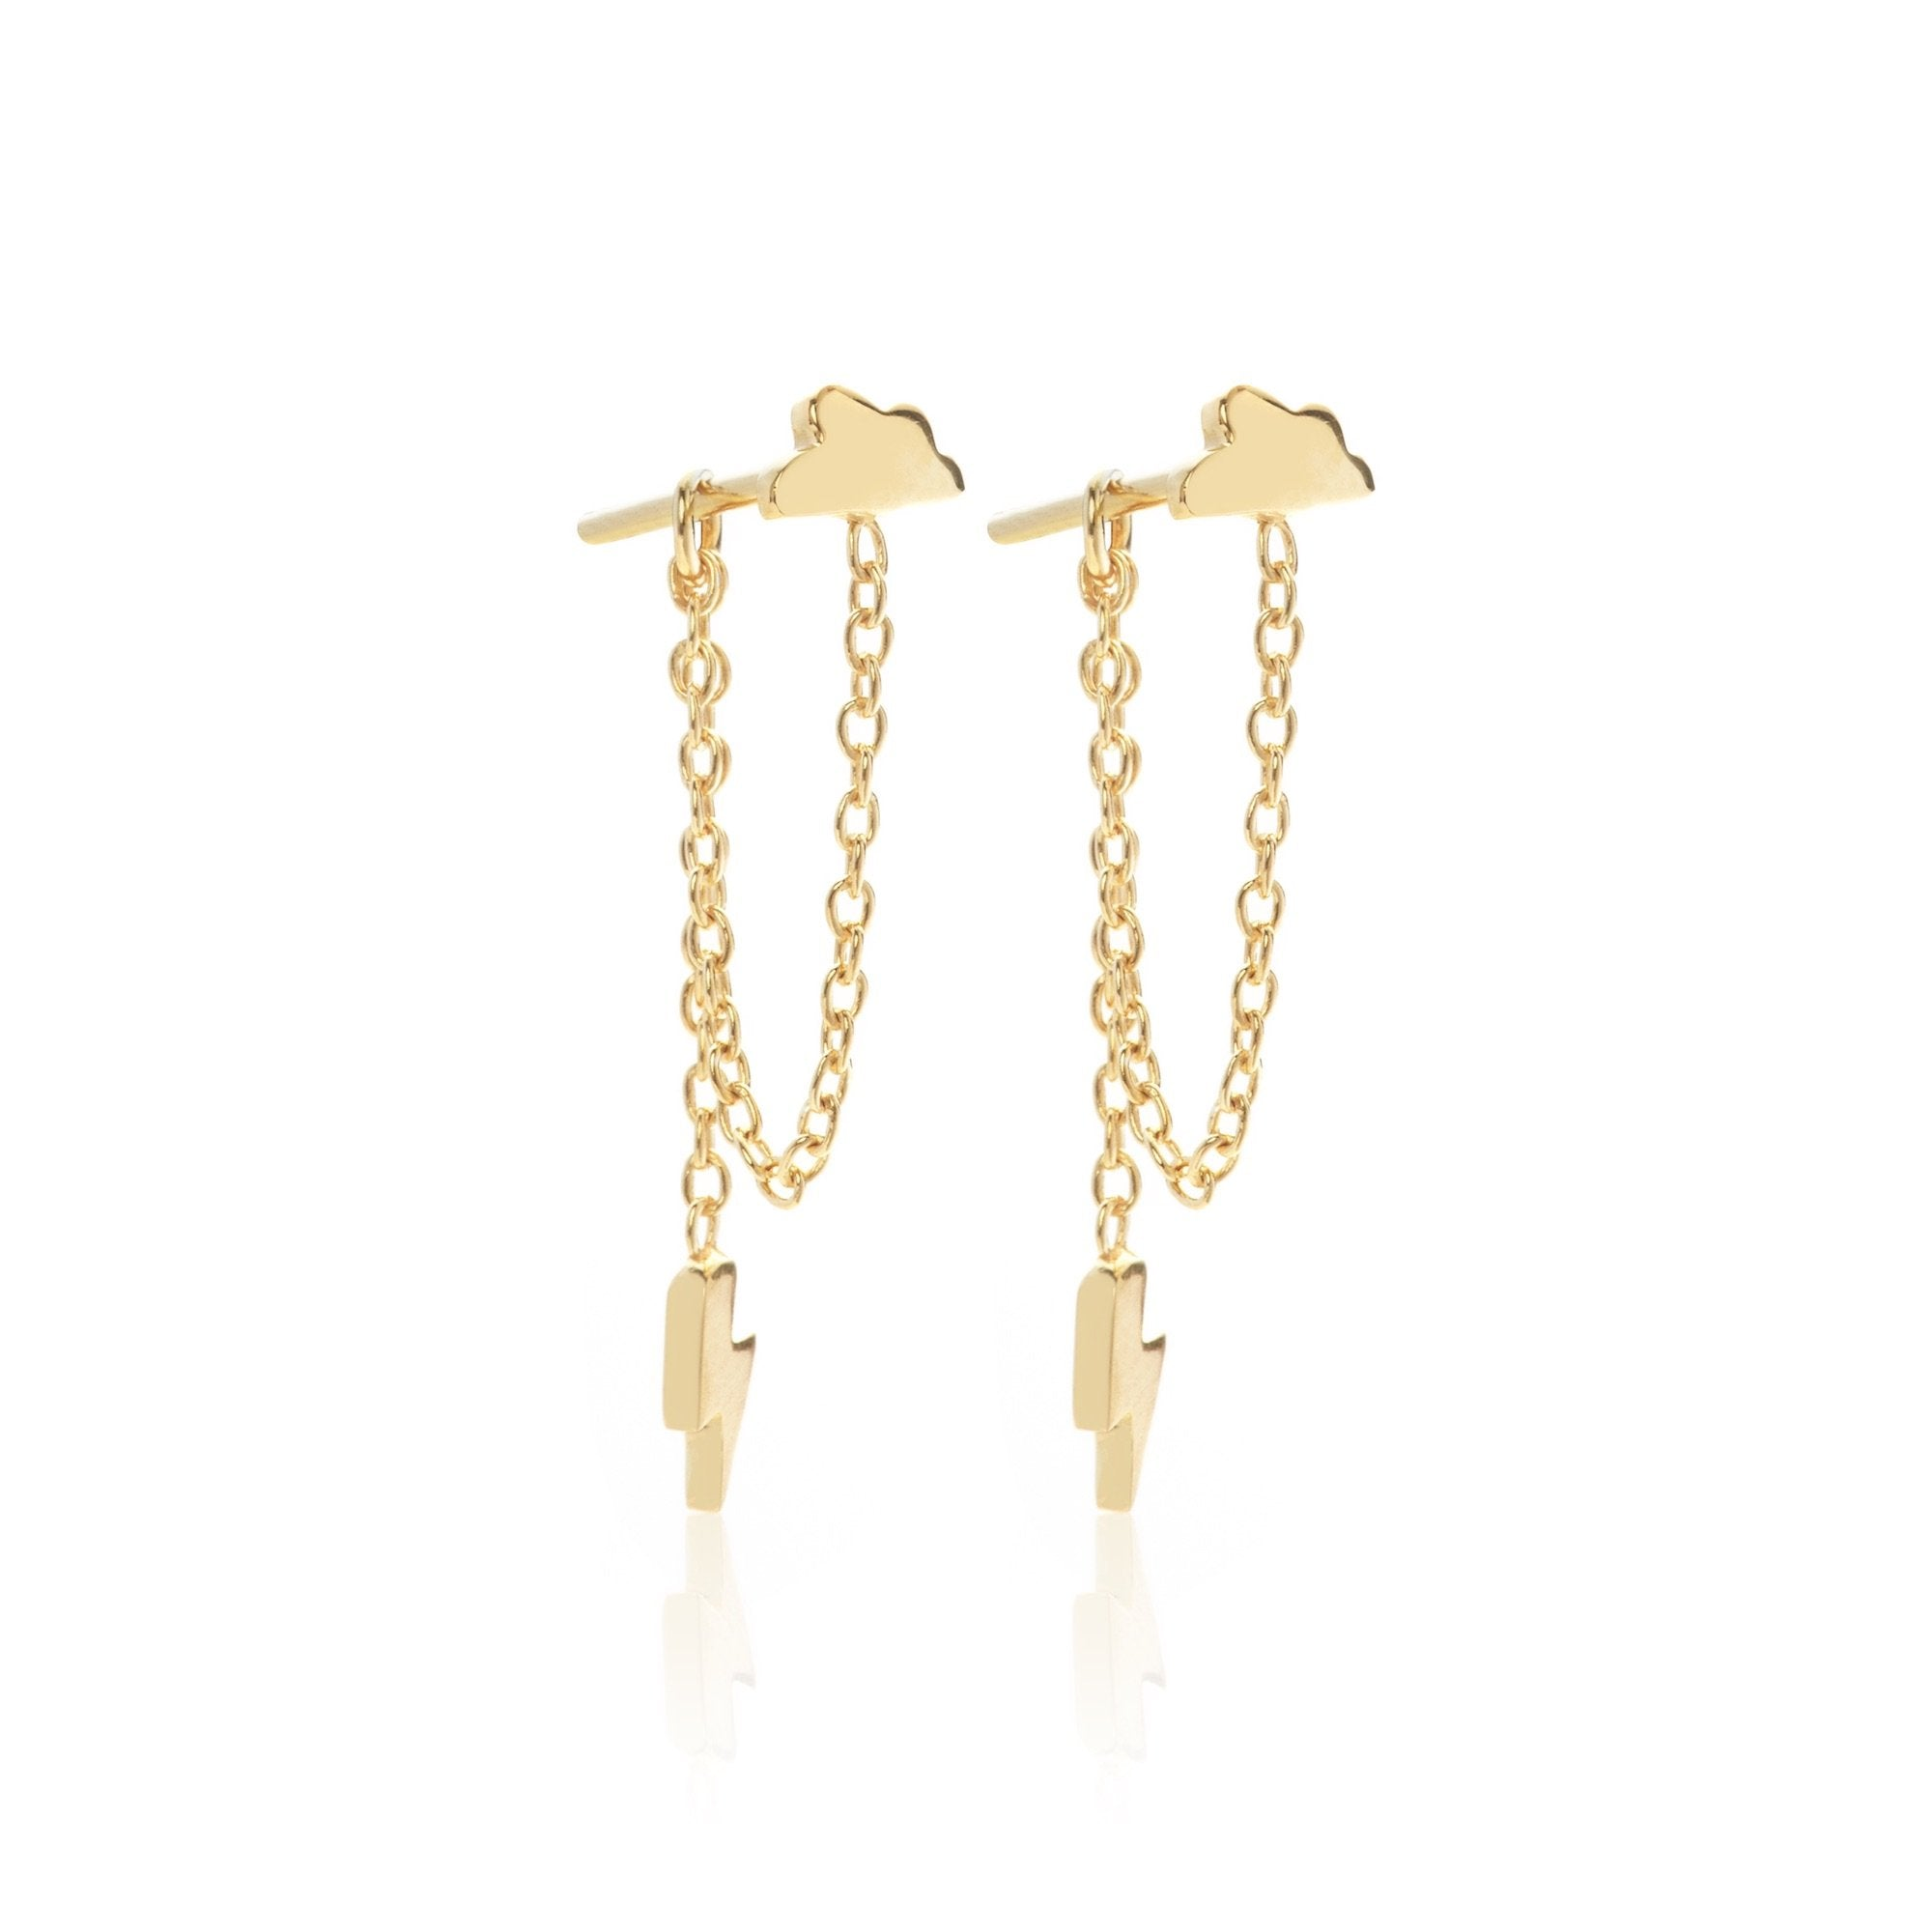 Silk & Steel Jewellery Superfine Gold Storm Drop earrings